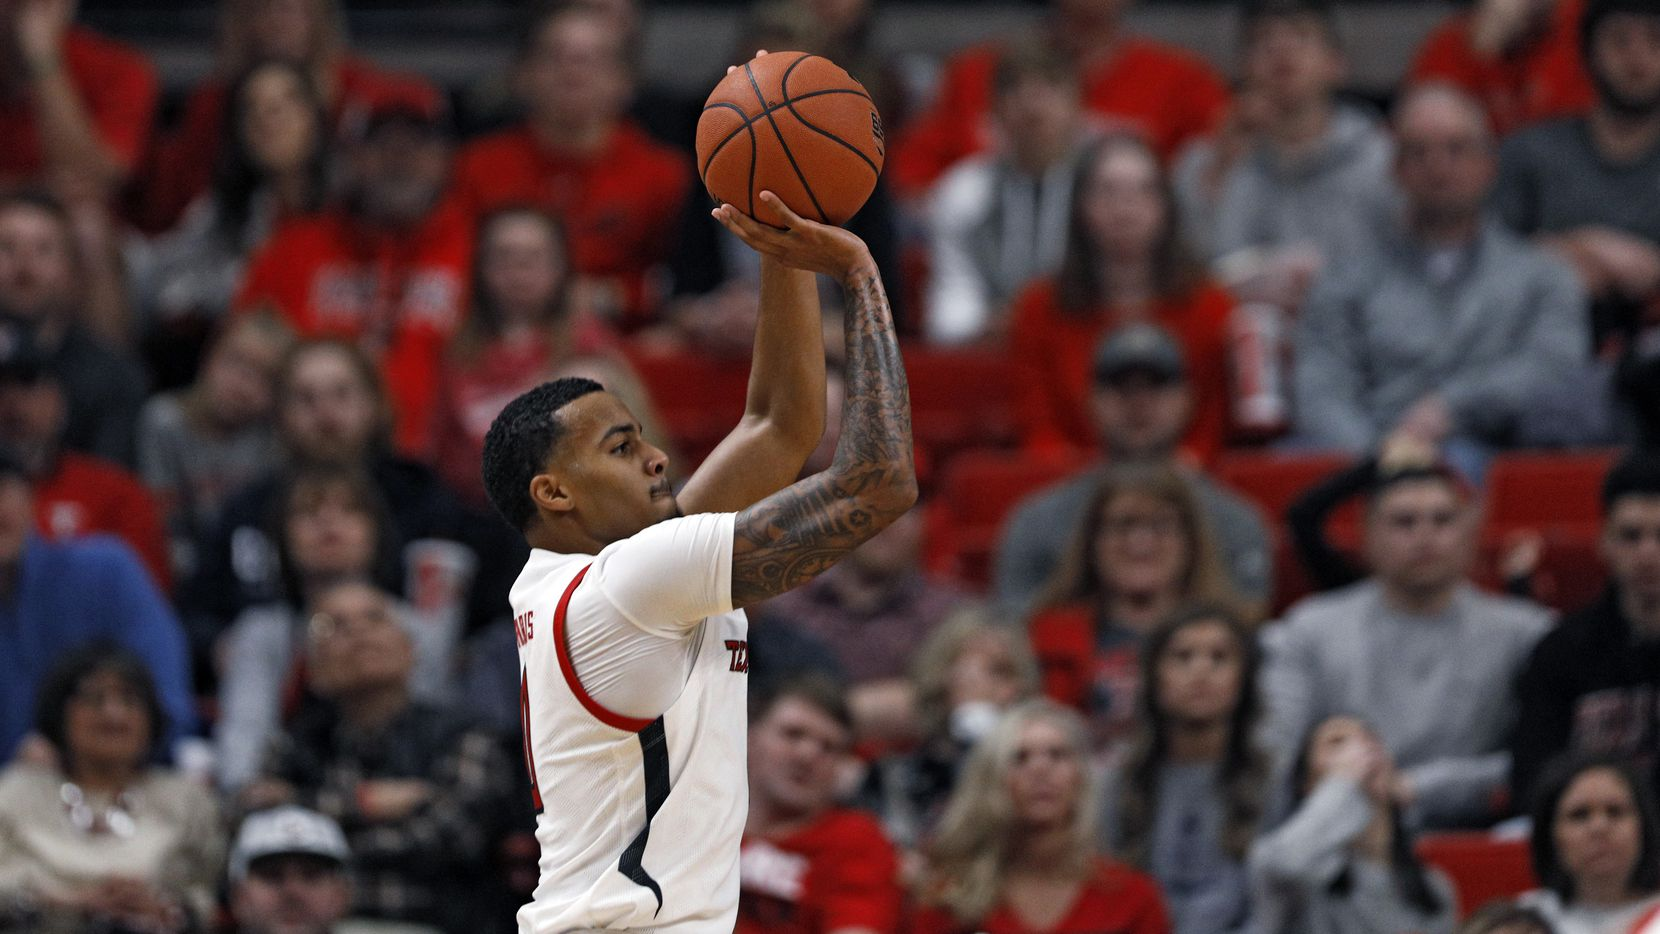 Texas Tech's Kyler Edwards (0) shoots for three points during the second half of an NCAA college basketball game against Cal State Bakersfield, Sunday, Dec. 29, 2019, in Lubbock, Texas.